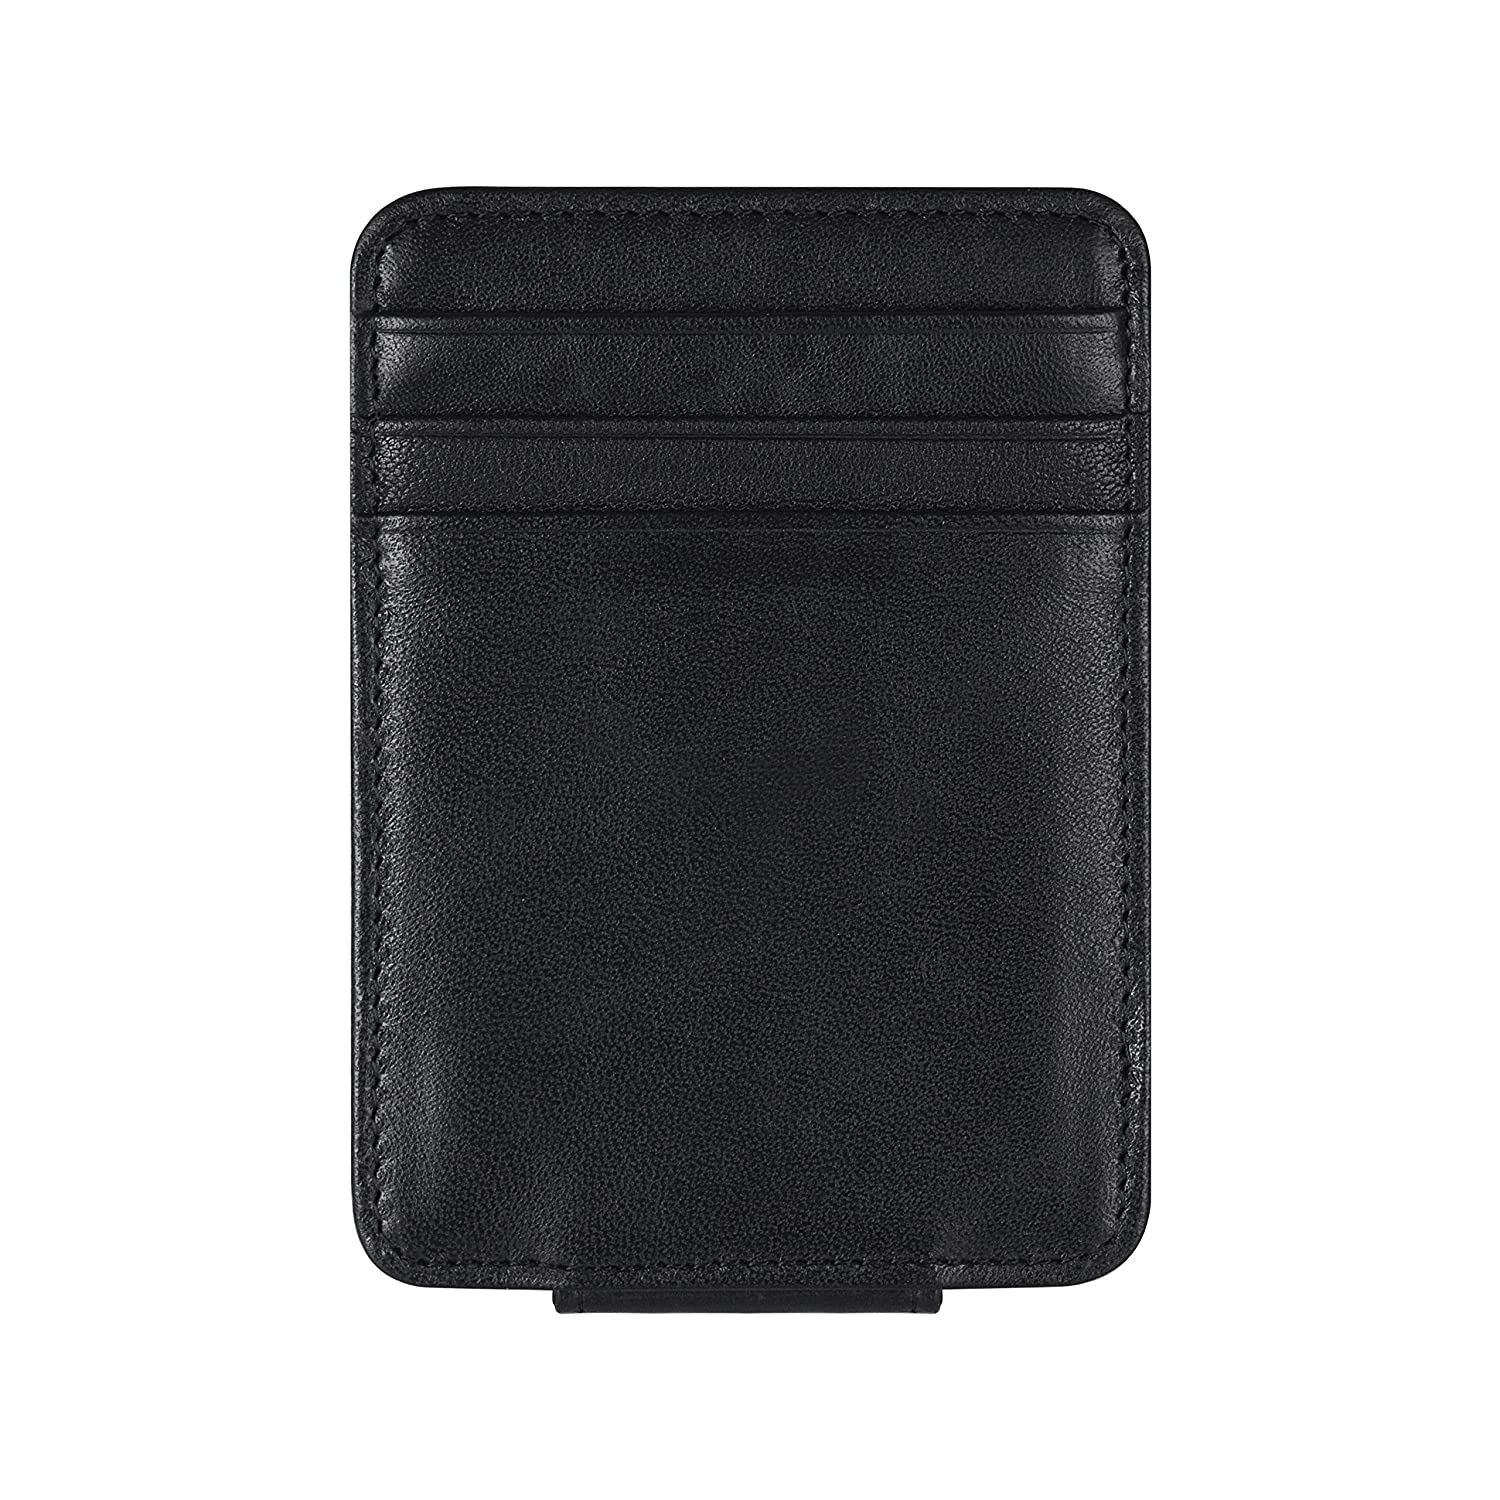 Travami RFID Blocking Slim Minimalist Money Clip Wallets for Men